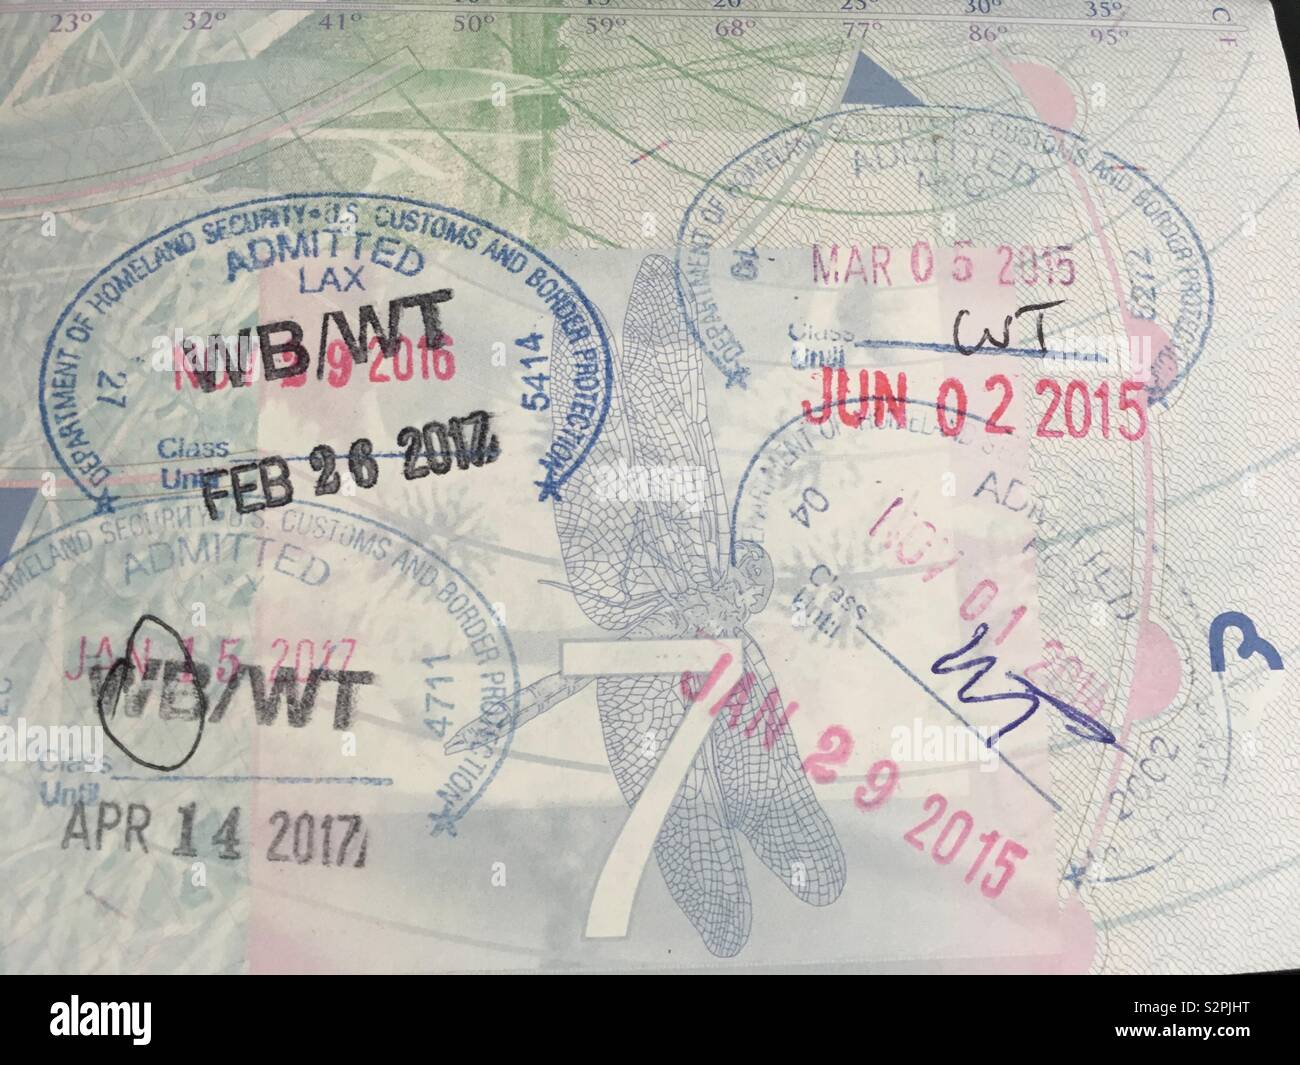 Passport visa page with stamps - Stock Image